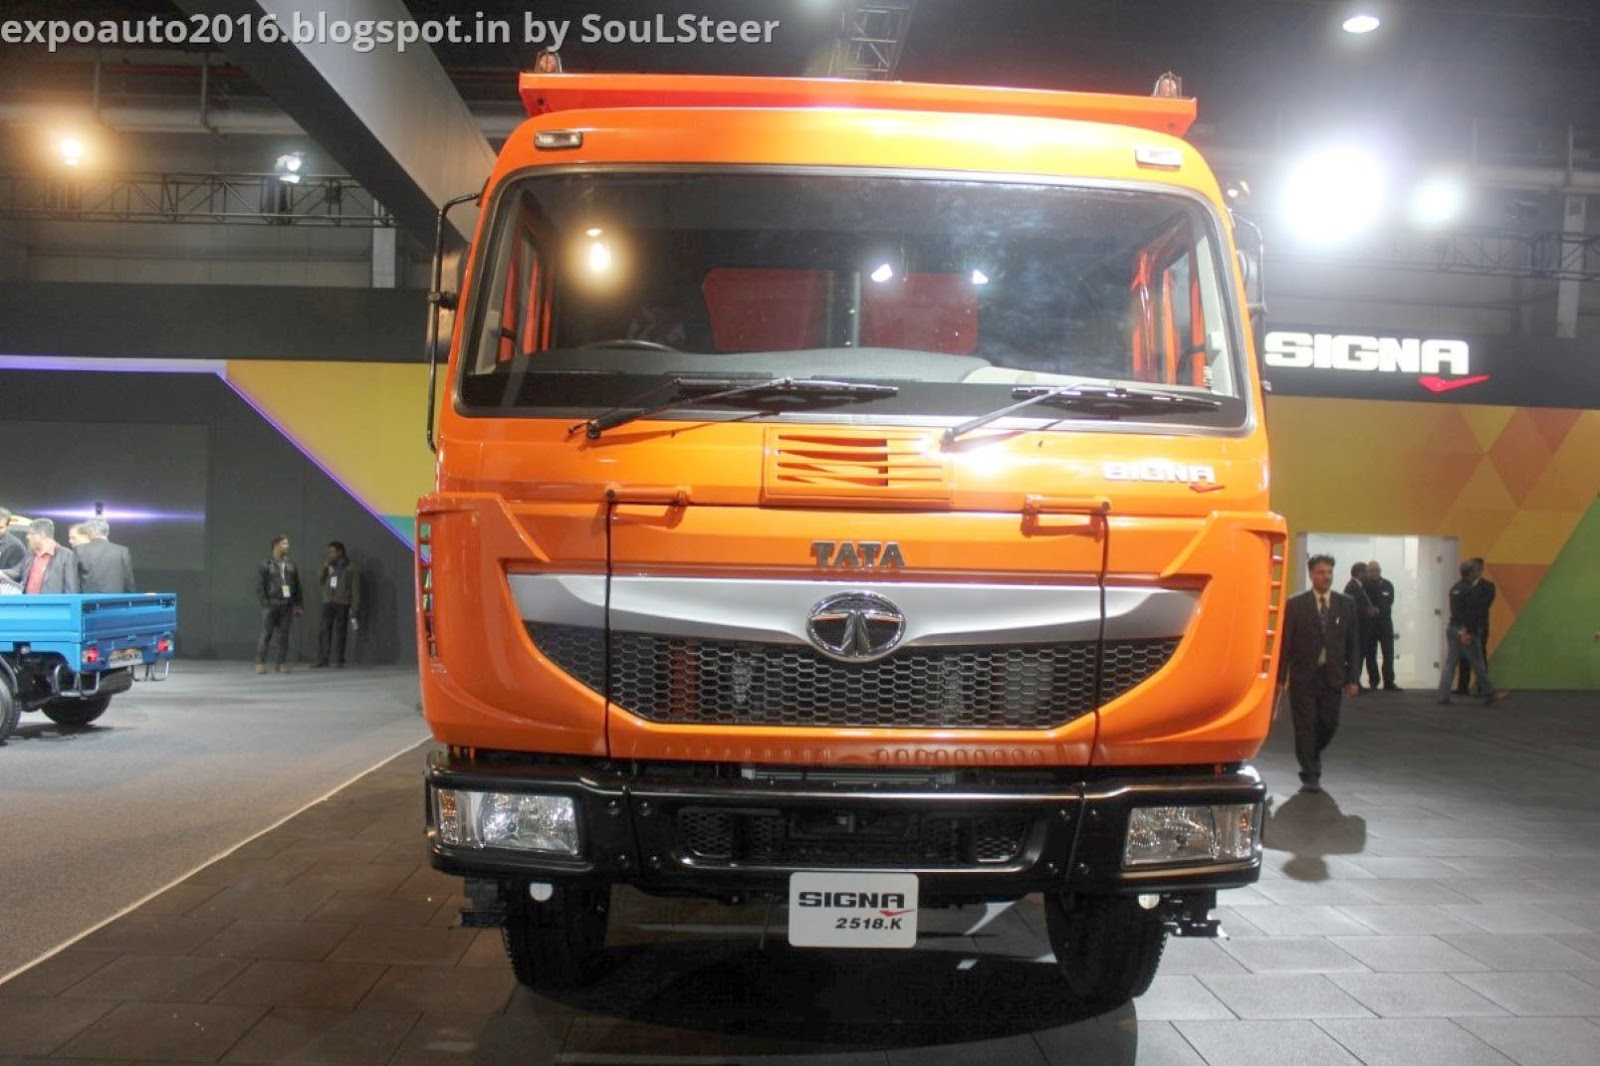 Tata Signa 2518.K, 4923.S and 3118.T trucks on display at Auto Expo 2016